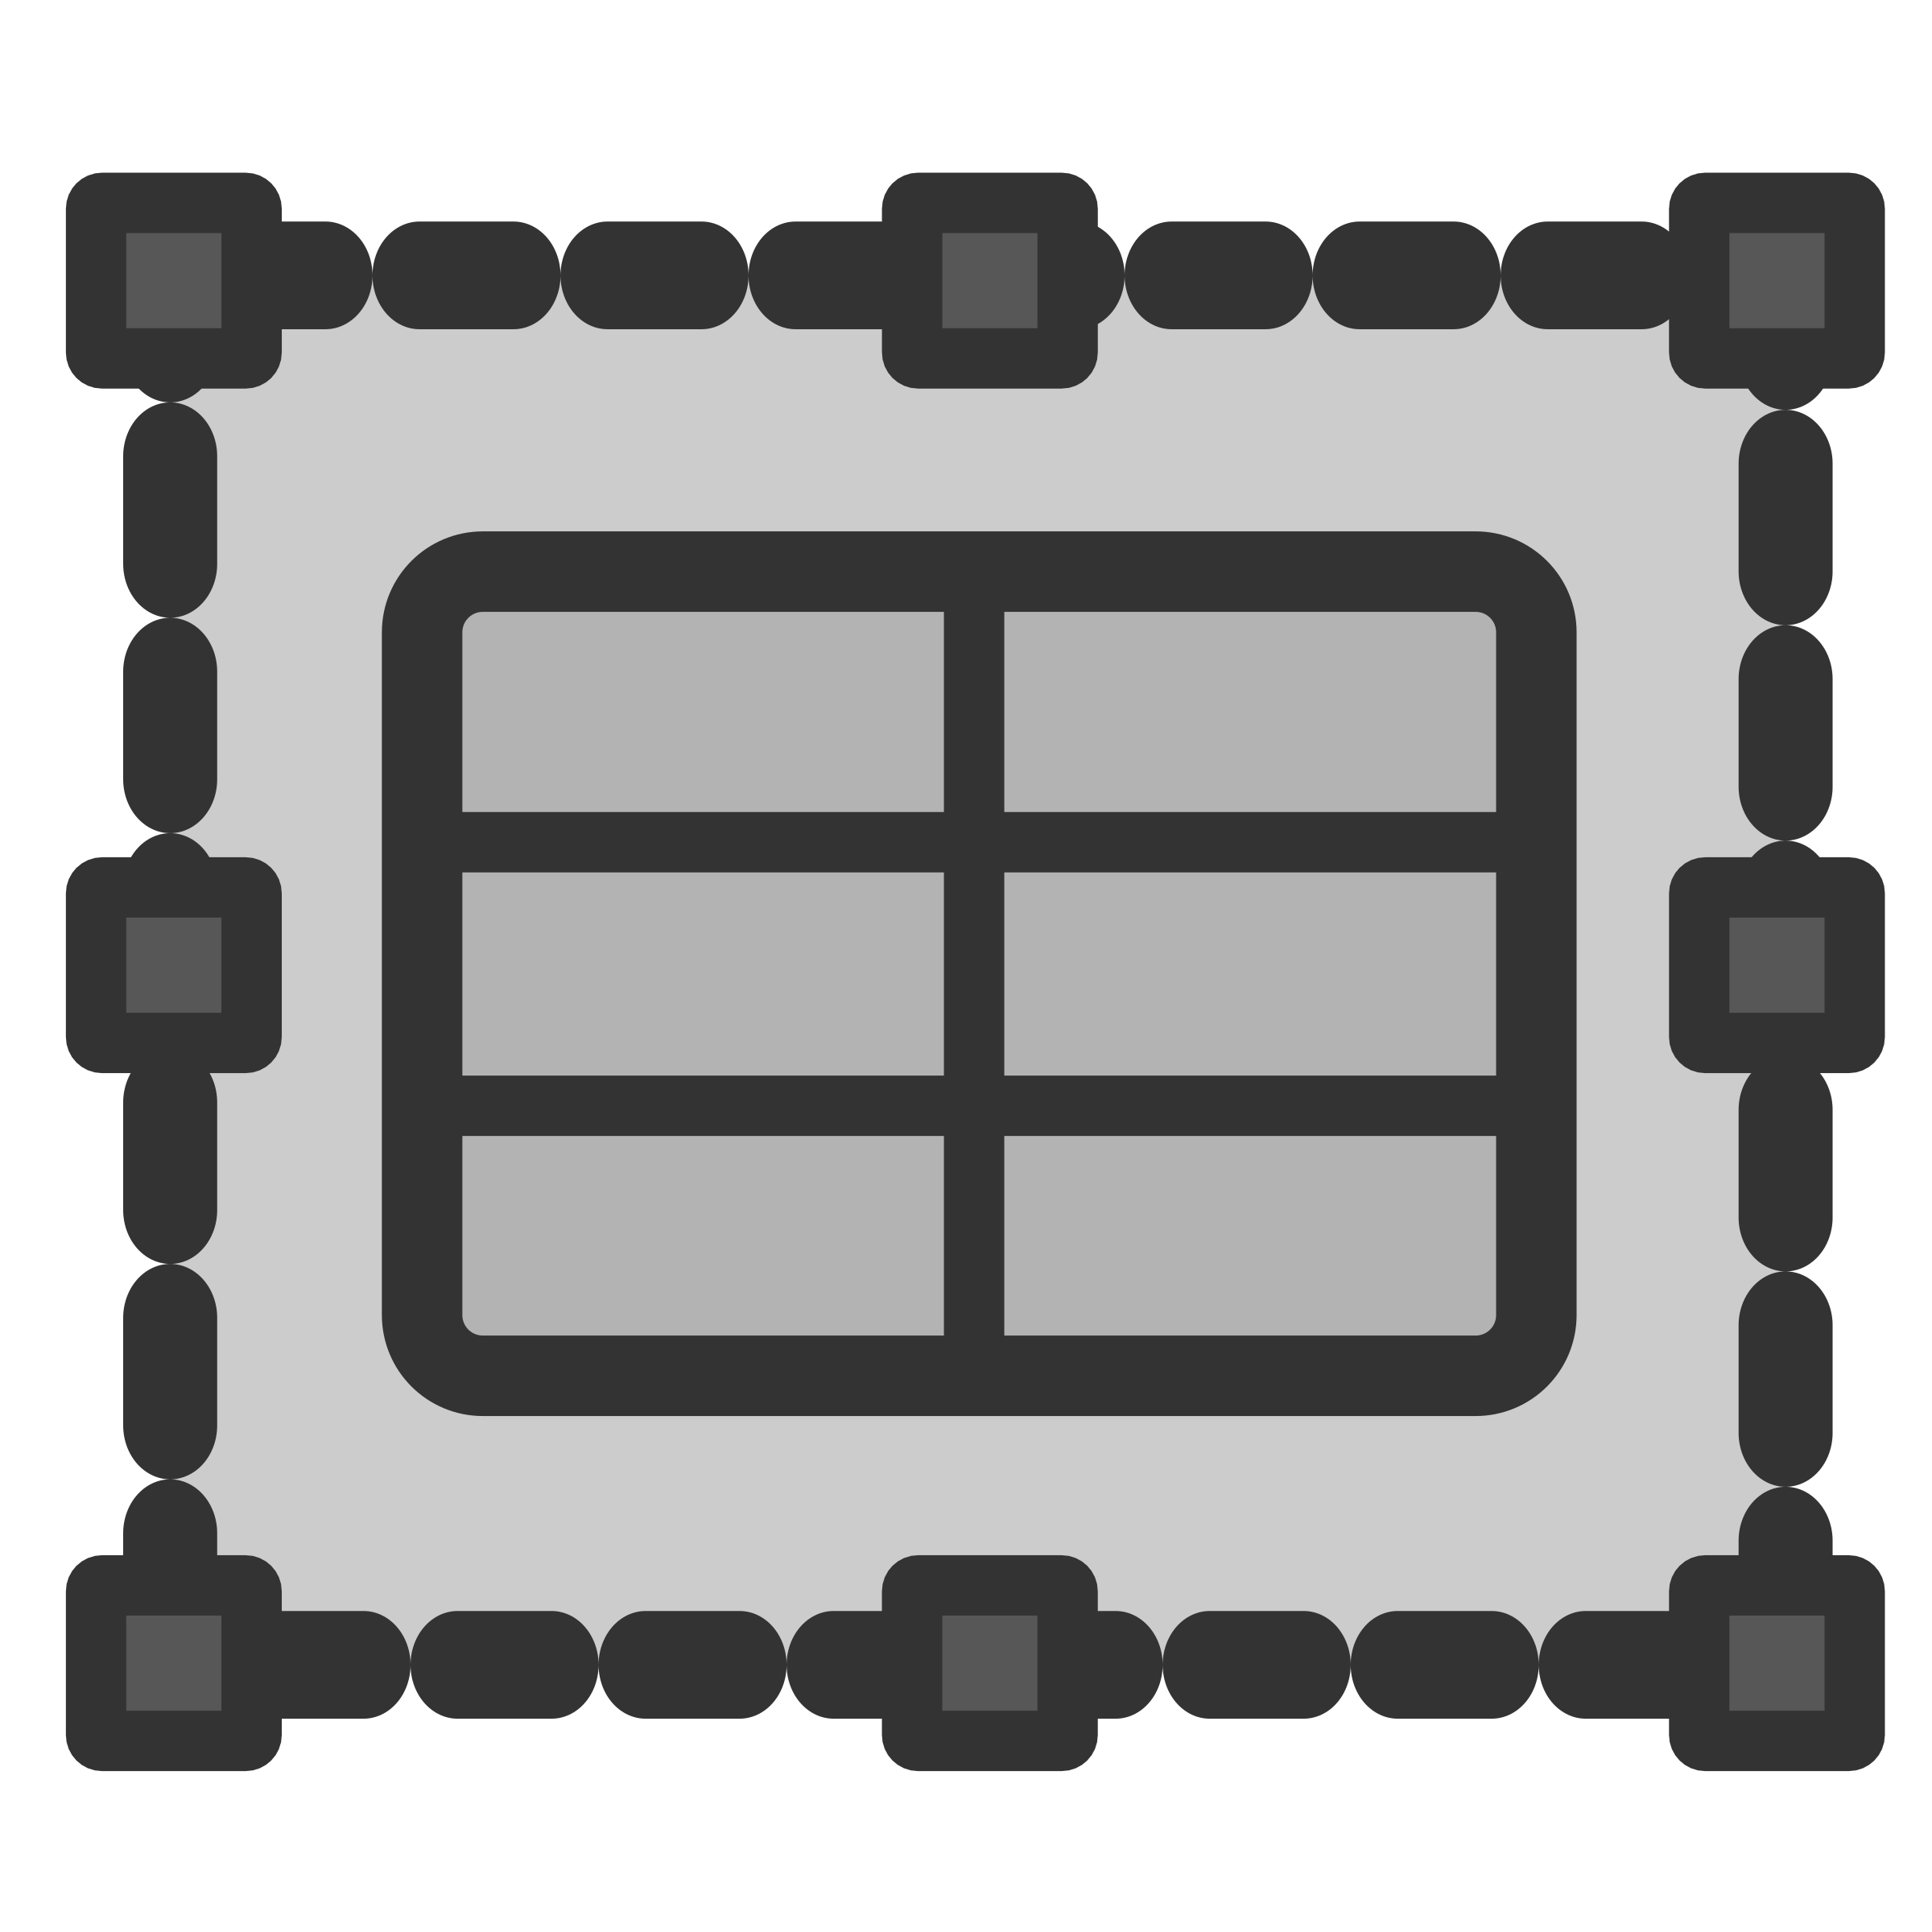 Spreadsheet Frame Icon by dannya